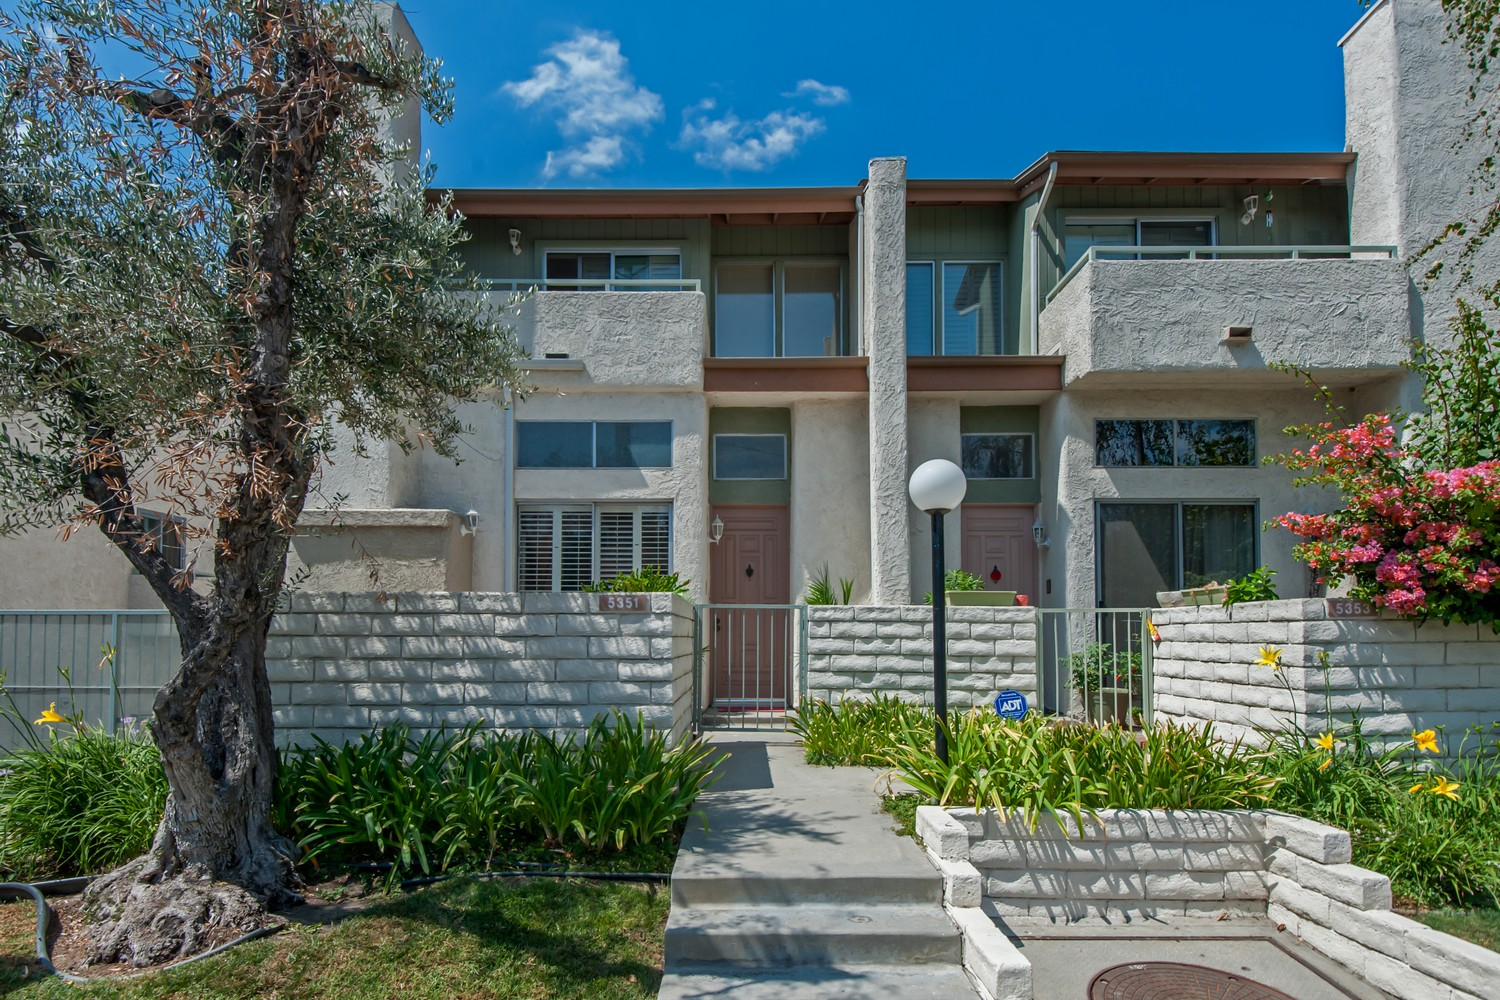 Townhouse for Sale at 5351 Corteen Pl Valley Village, California 91607 United States